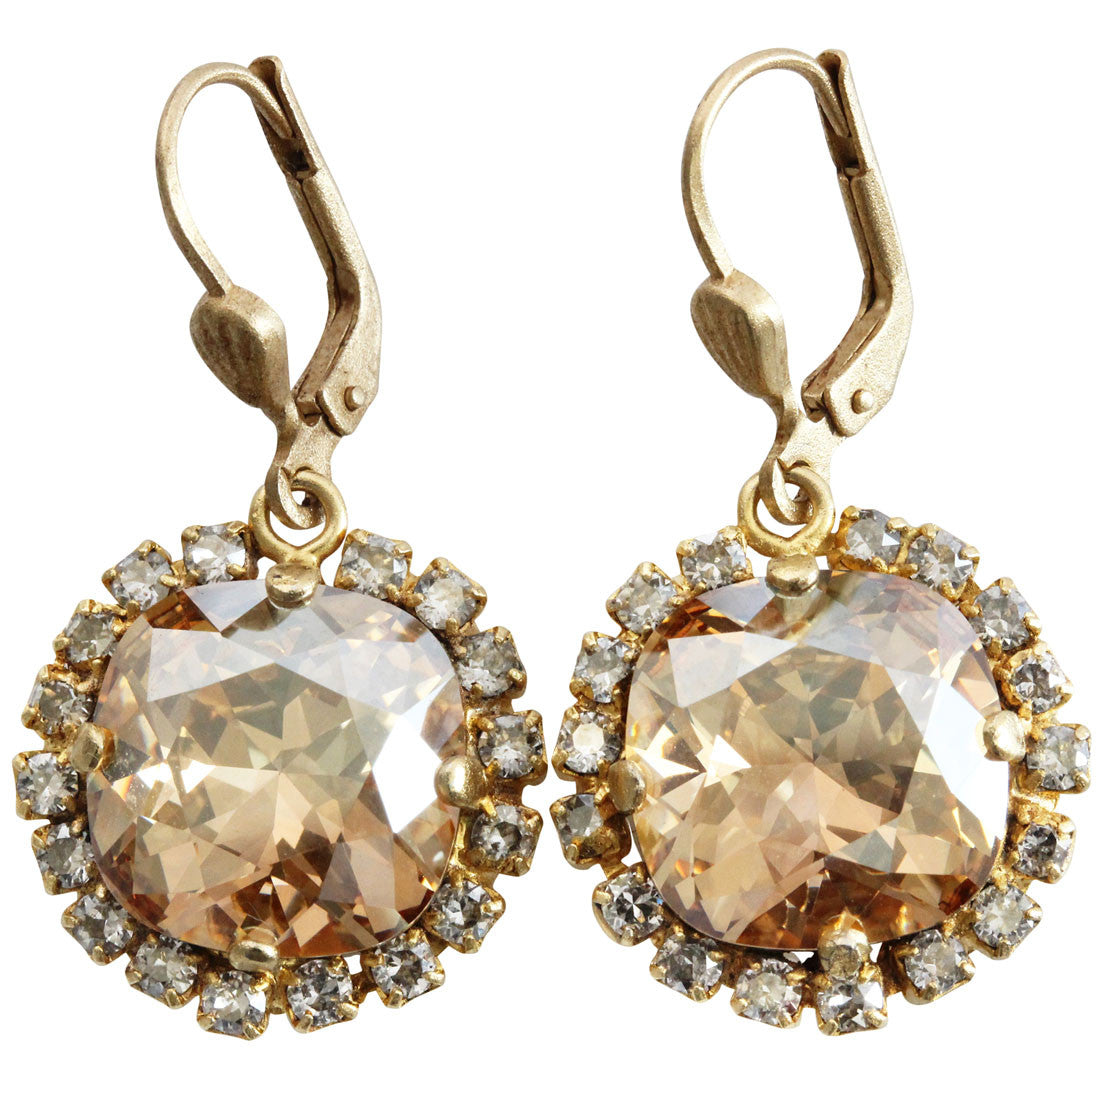 Catherine Popesco 14k Gold Plated Cushion Crystal Border Earrings, 4537G Champagne